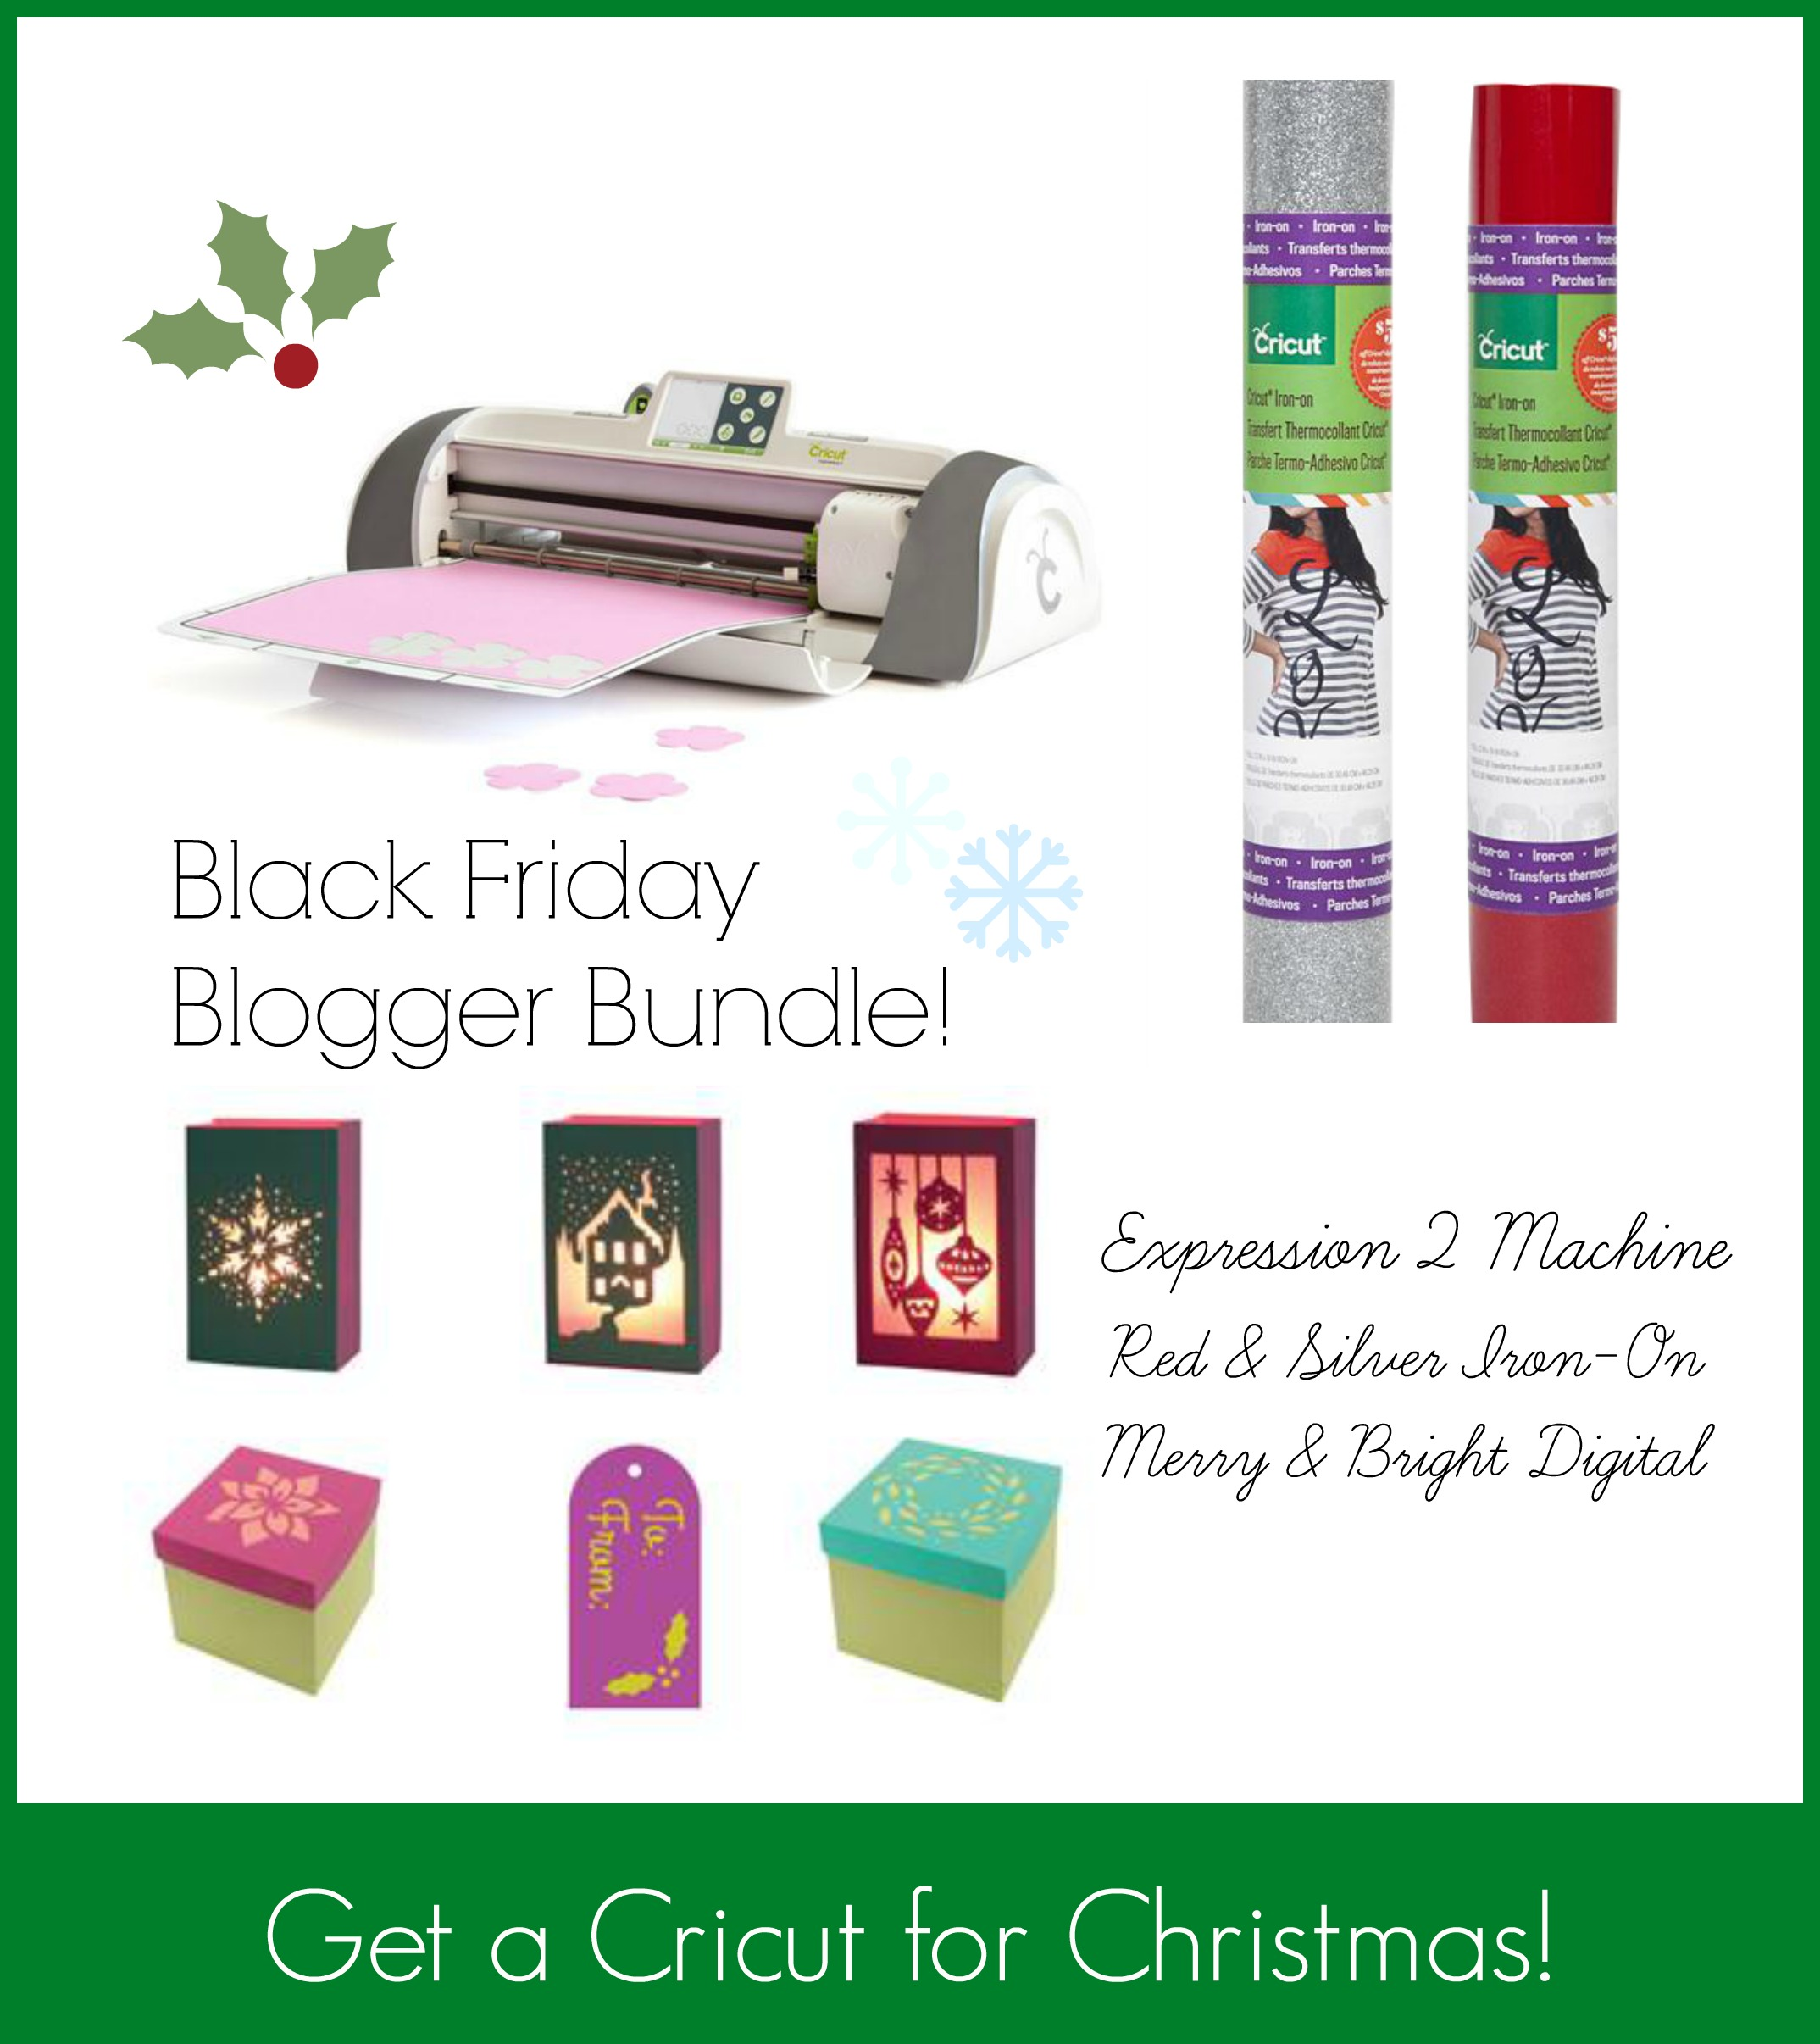 Cricut_Black_Friday_Blogger_Bundle